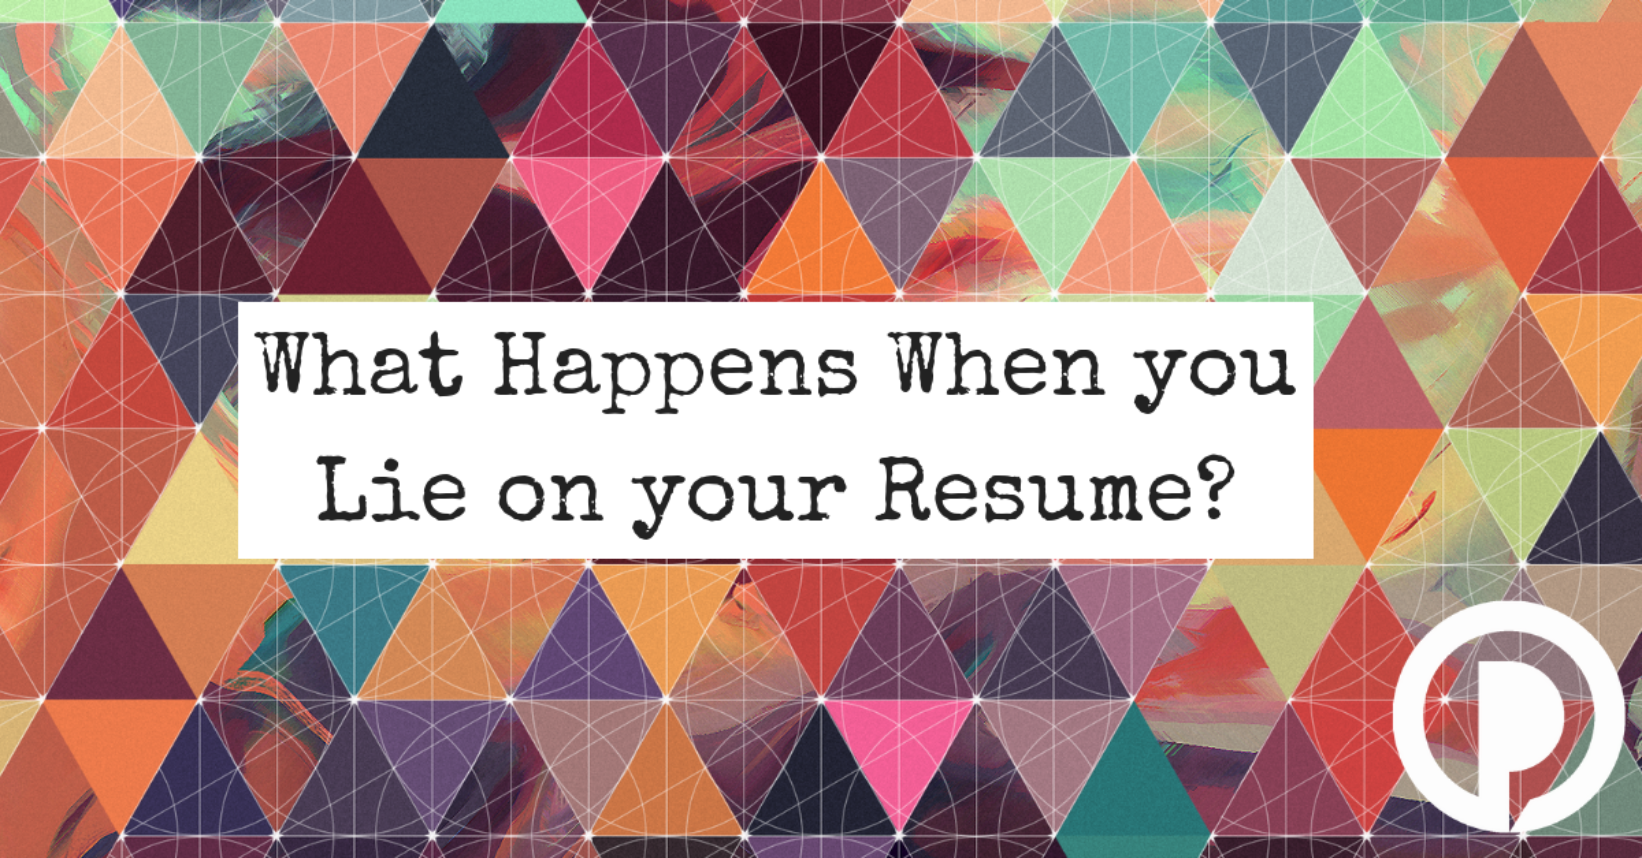 What Happens When You Lie on Your Resume - Palmer Group